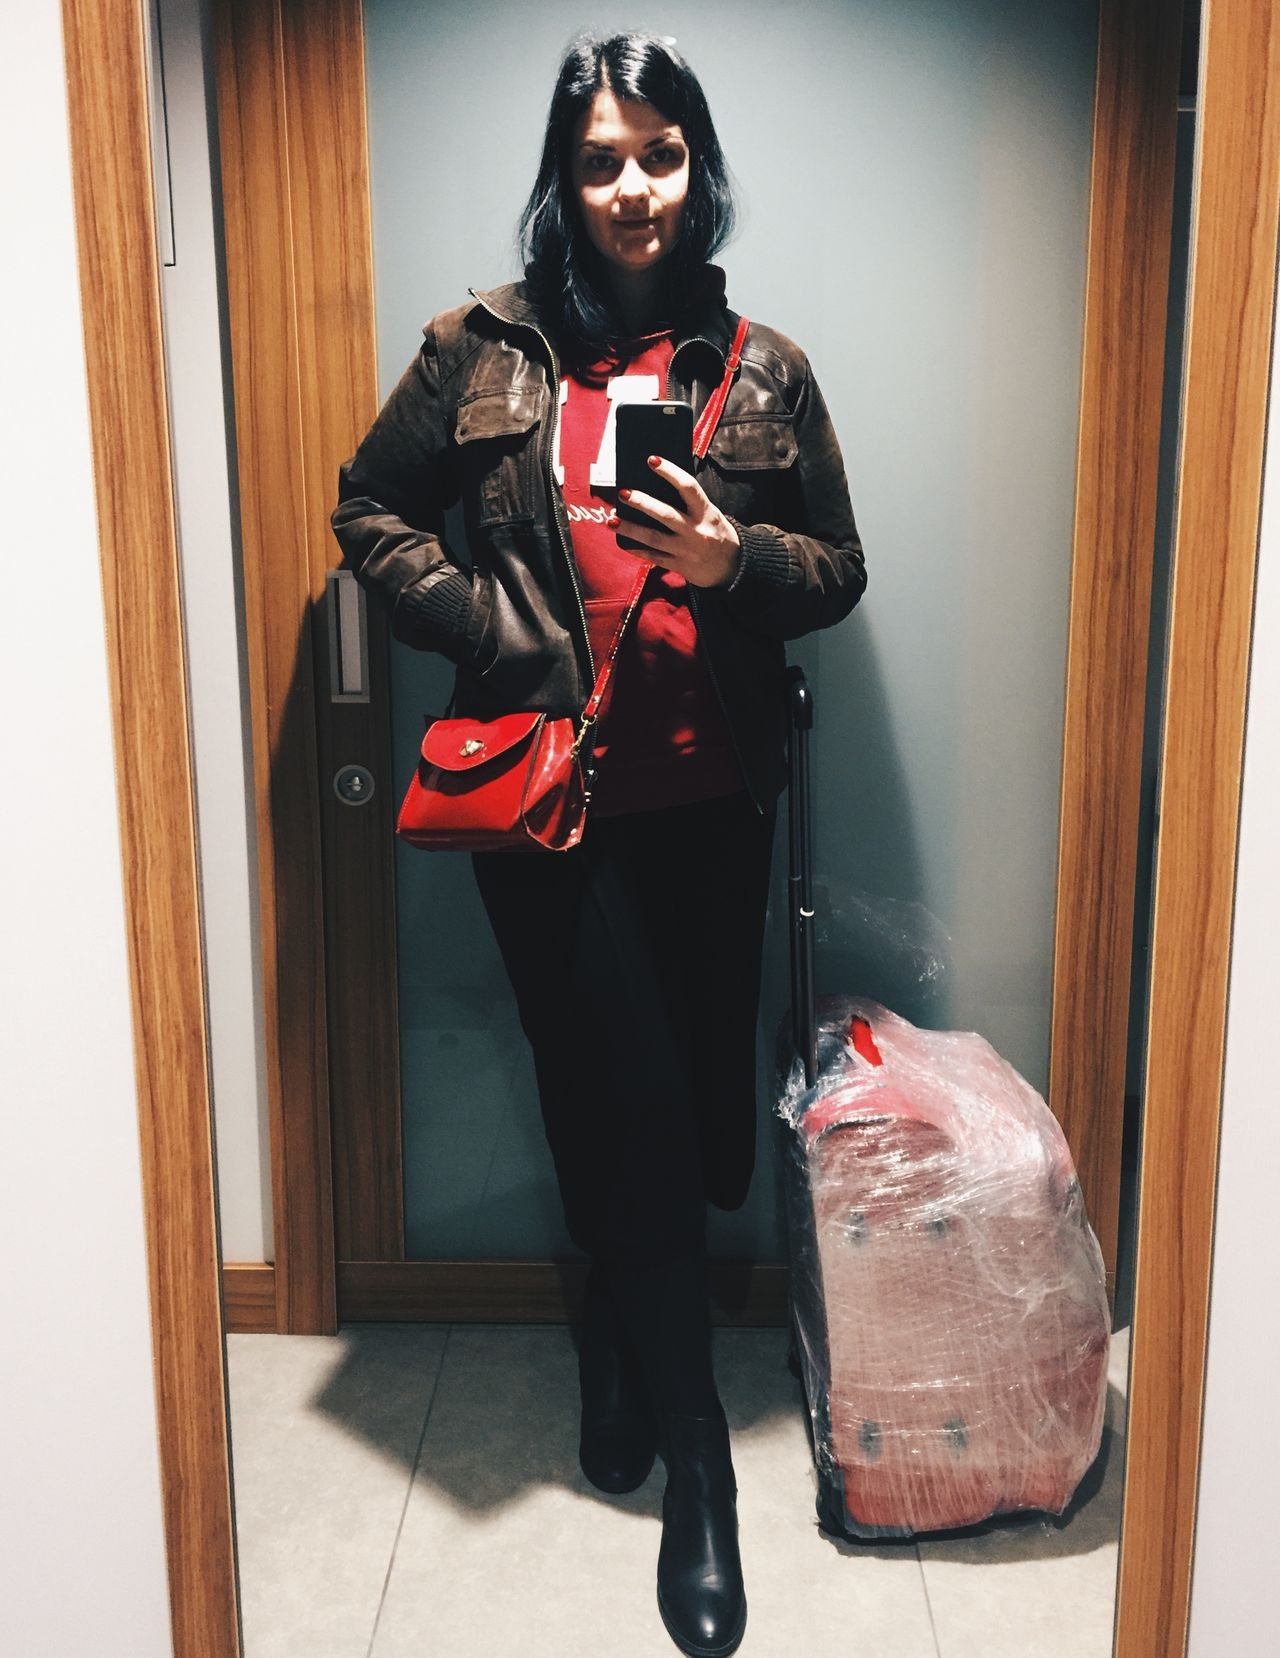 A girl with a lagguage takes a selfie in a hotel room before departing to the airport Bag Baggage Hotel Room Lagguage Leather Jacket Mirror Selfie One Person One Woman Only Only Women Purse Ready To Depart Ready To Leave Selfie Tourist Warm Clothing Wrapped